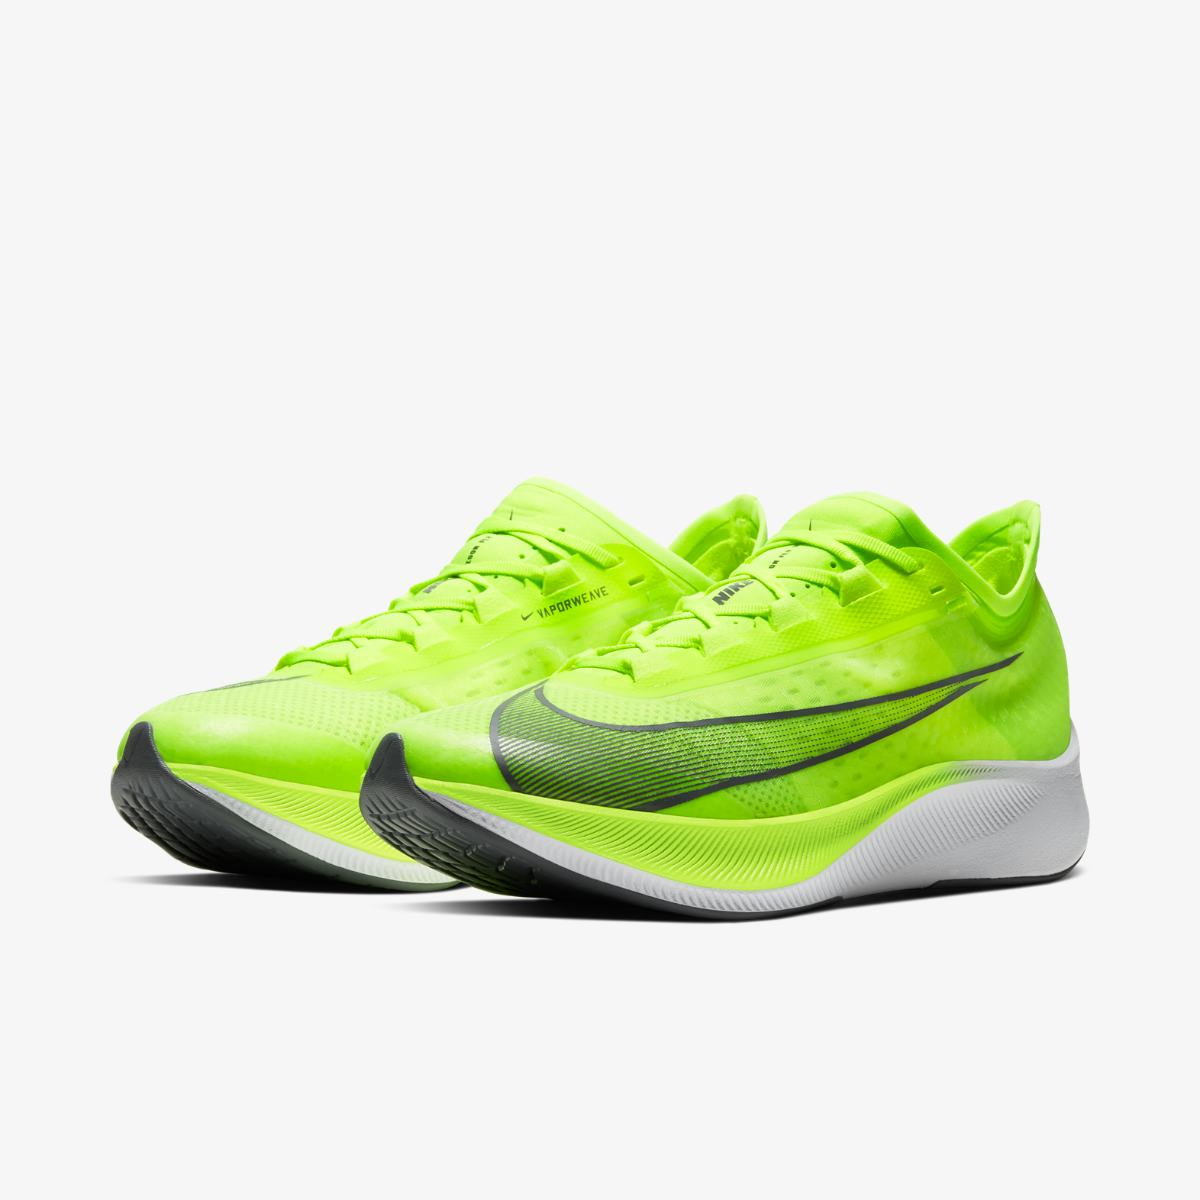 Кроссовки NIKE ZOOM FLY 3 AT8240-700 фото